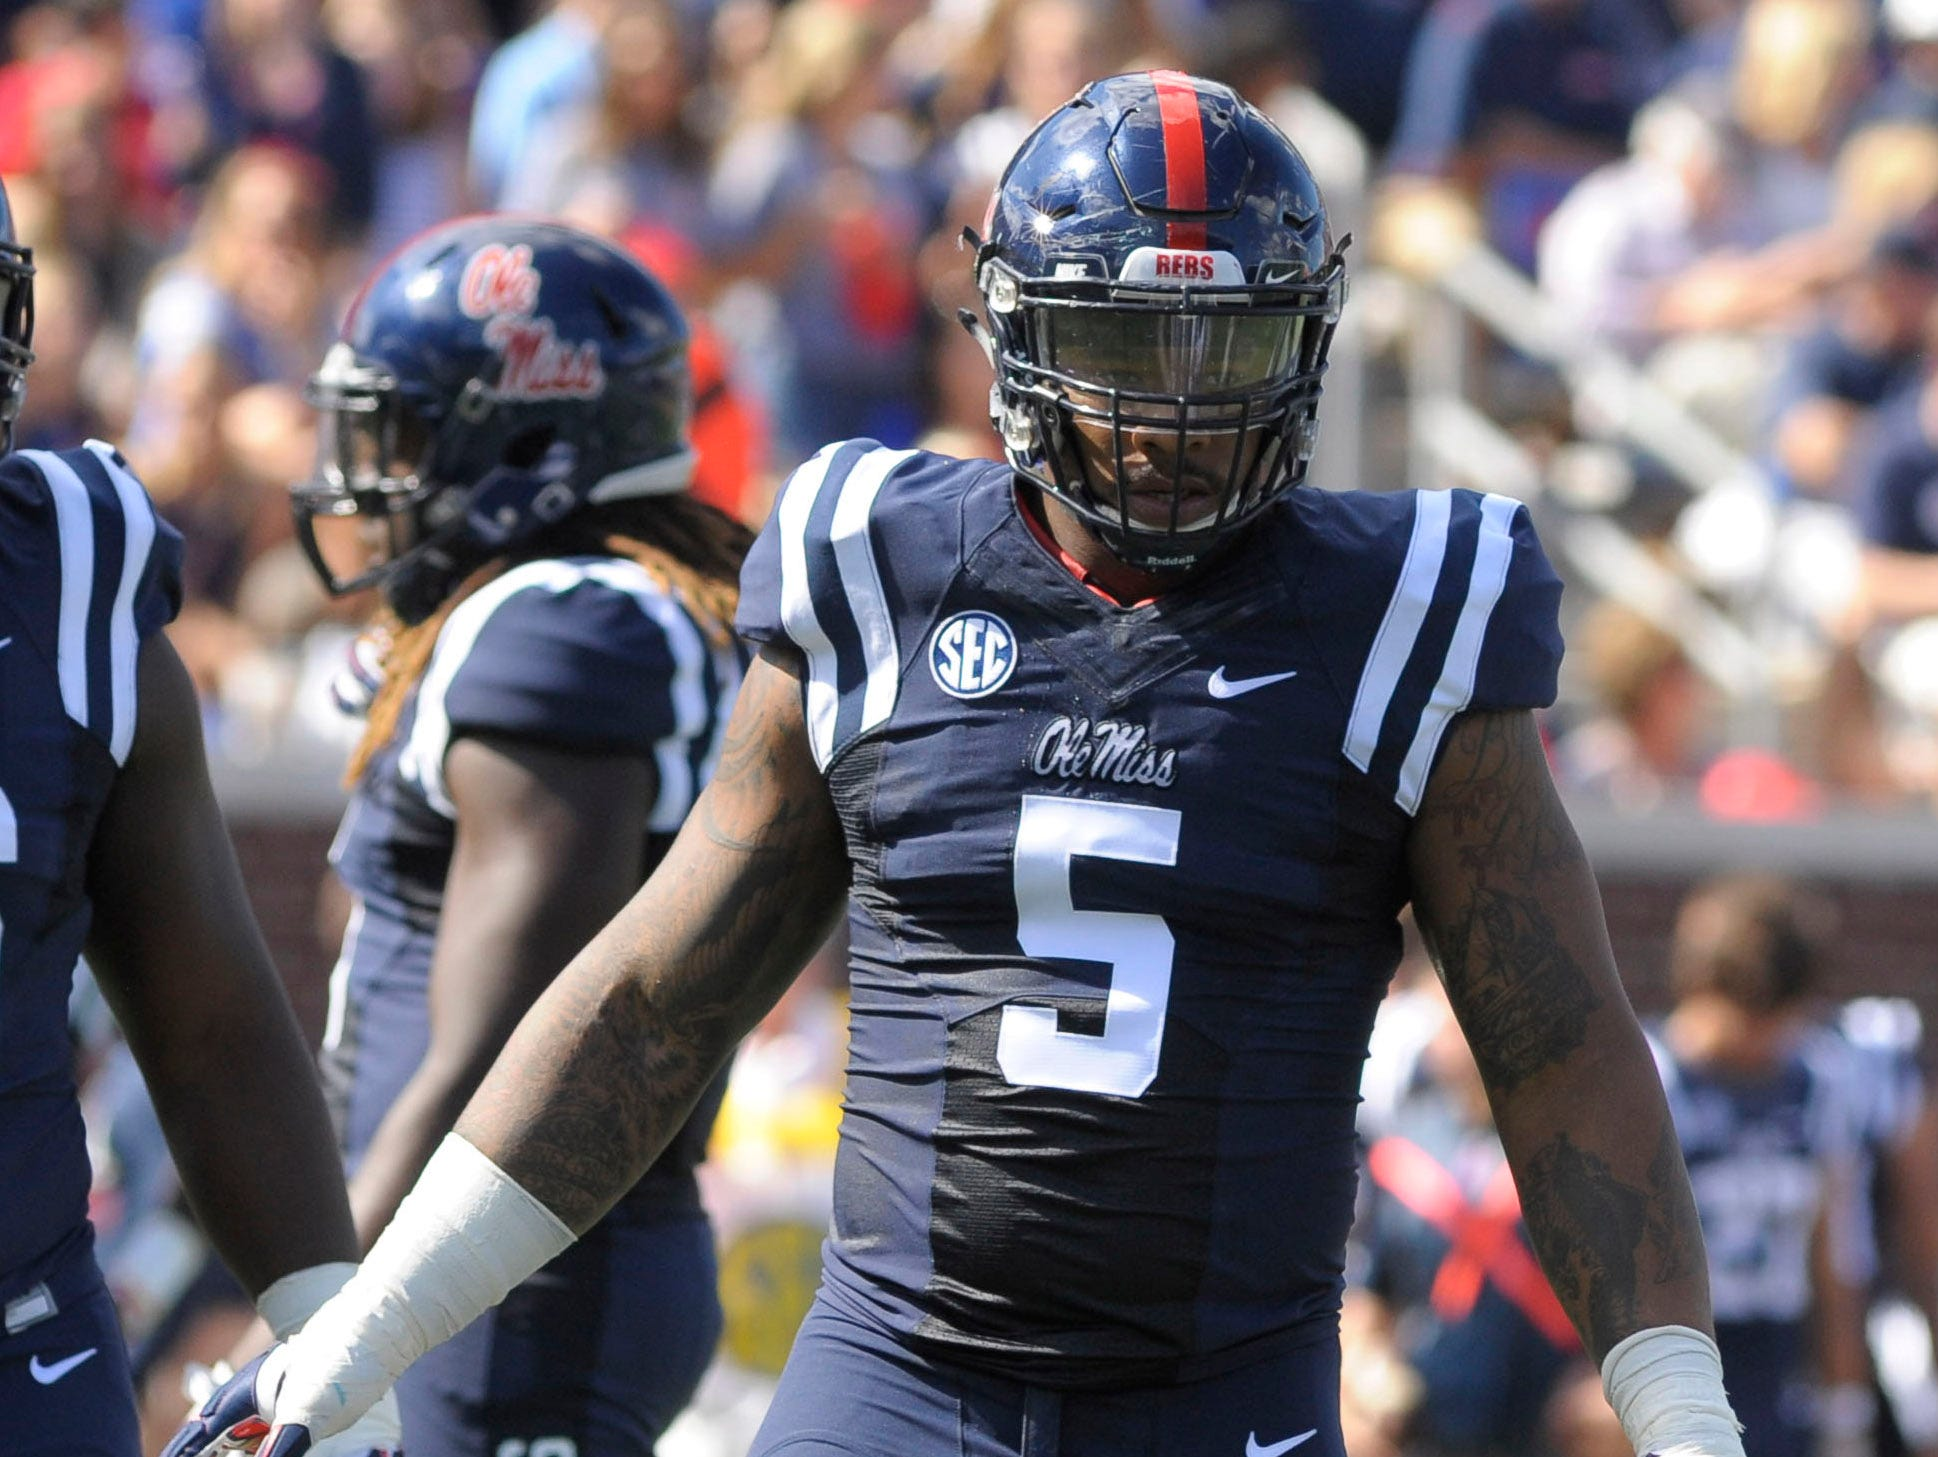 Ole Miss defensive tackle Robert Nkemdiche was one of three Rebels projected to go in the top 10 of a recent CBS Sports mock draft.